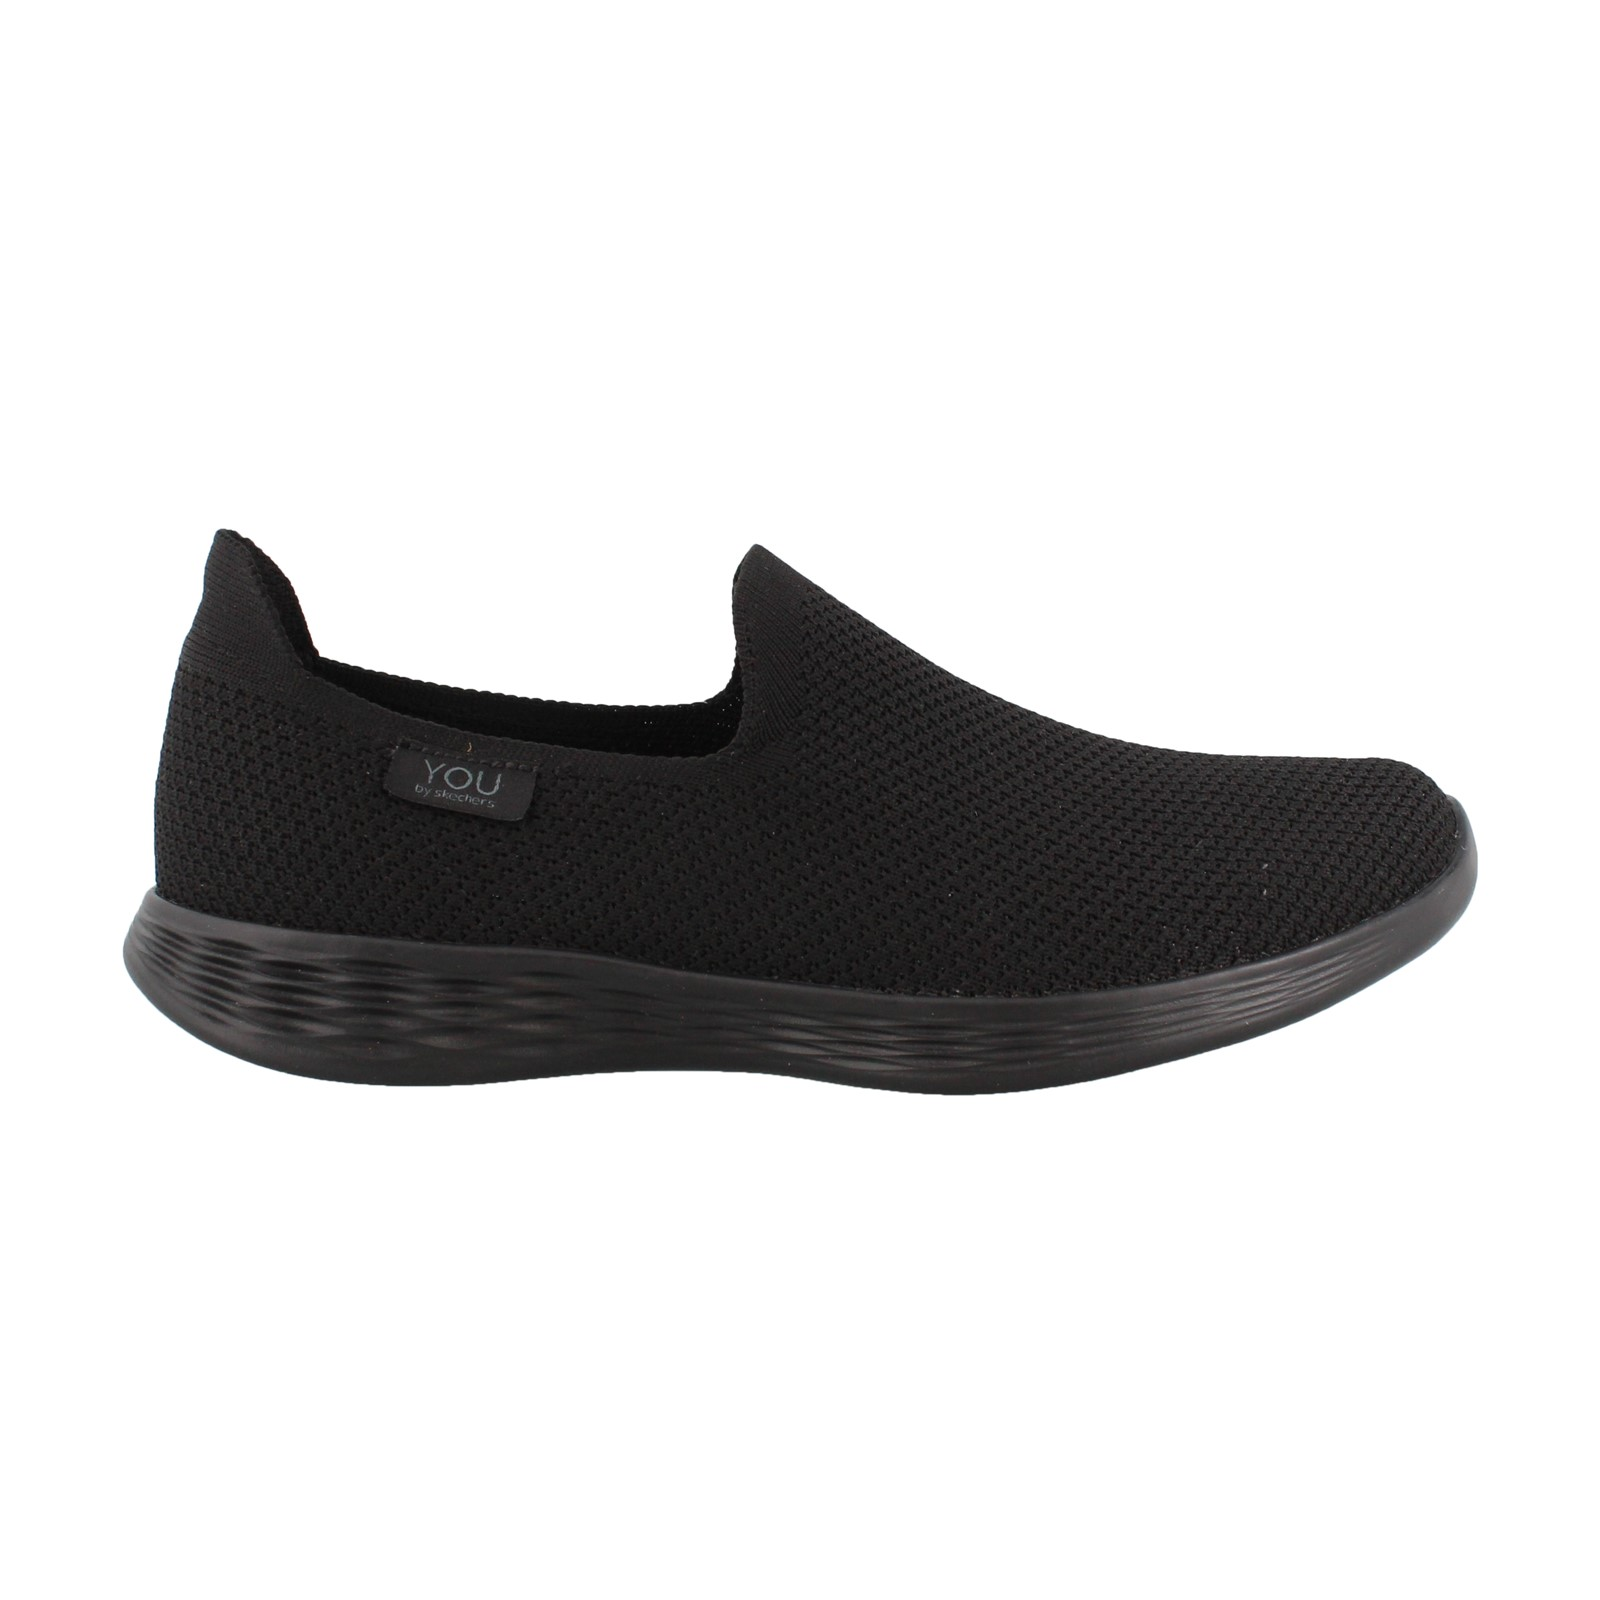 Women's Skechers Performance, You Zen Slip on Shoes